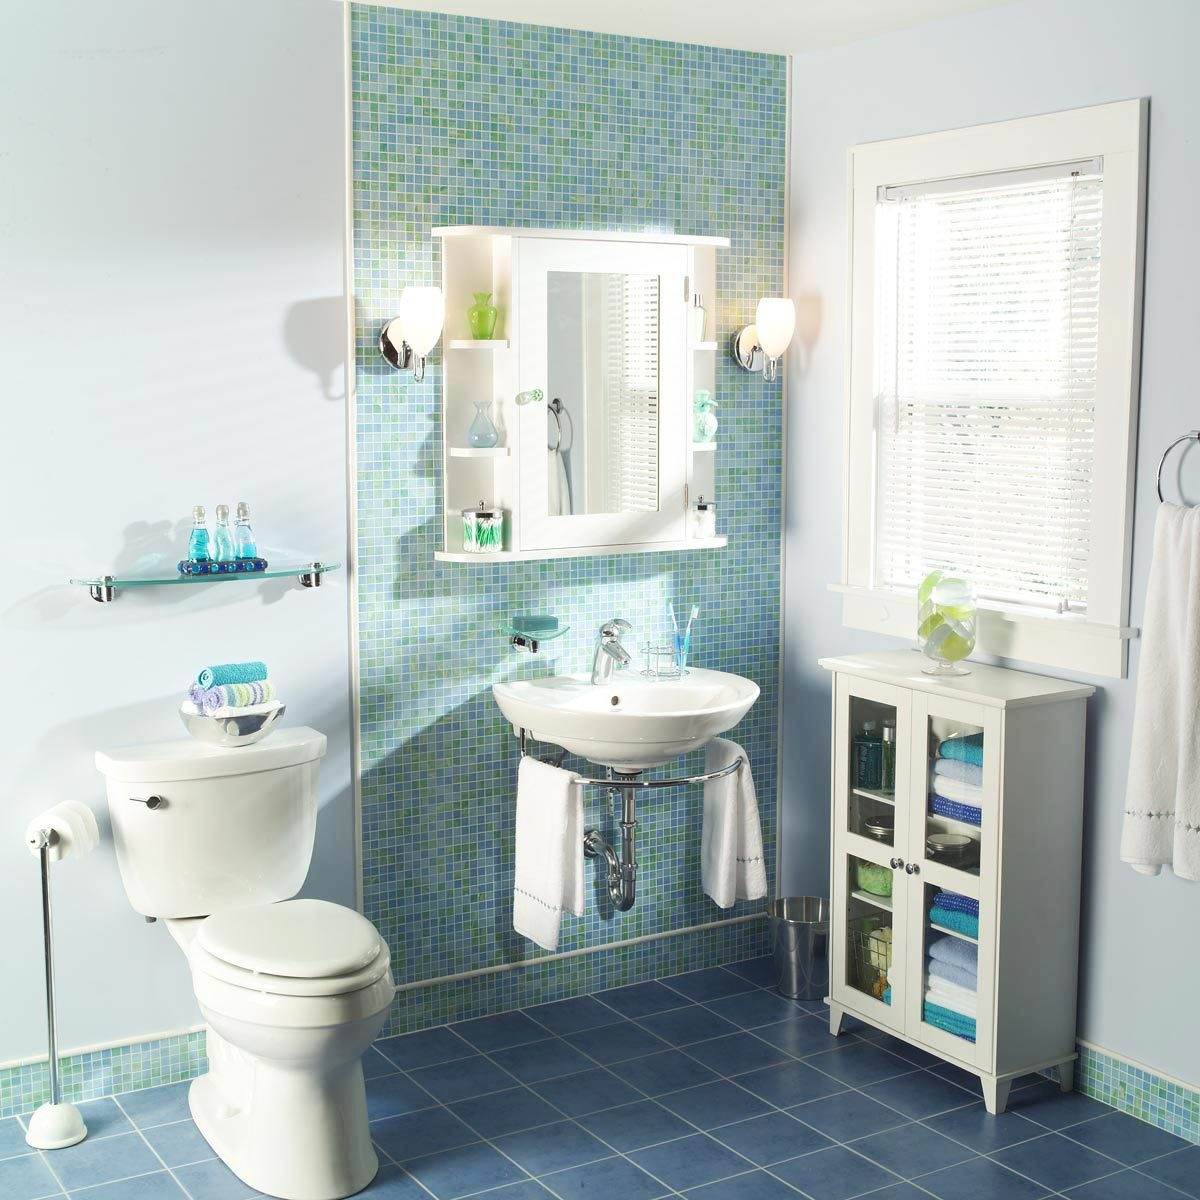 Small Bathroom Makeovers: 7 Before And After Bathroom Makeovers You Can Do In A